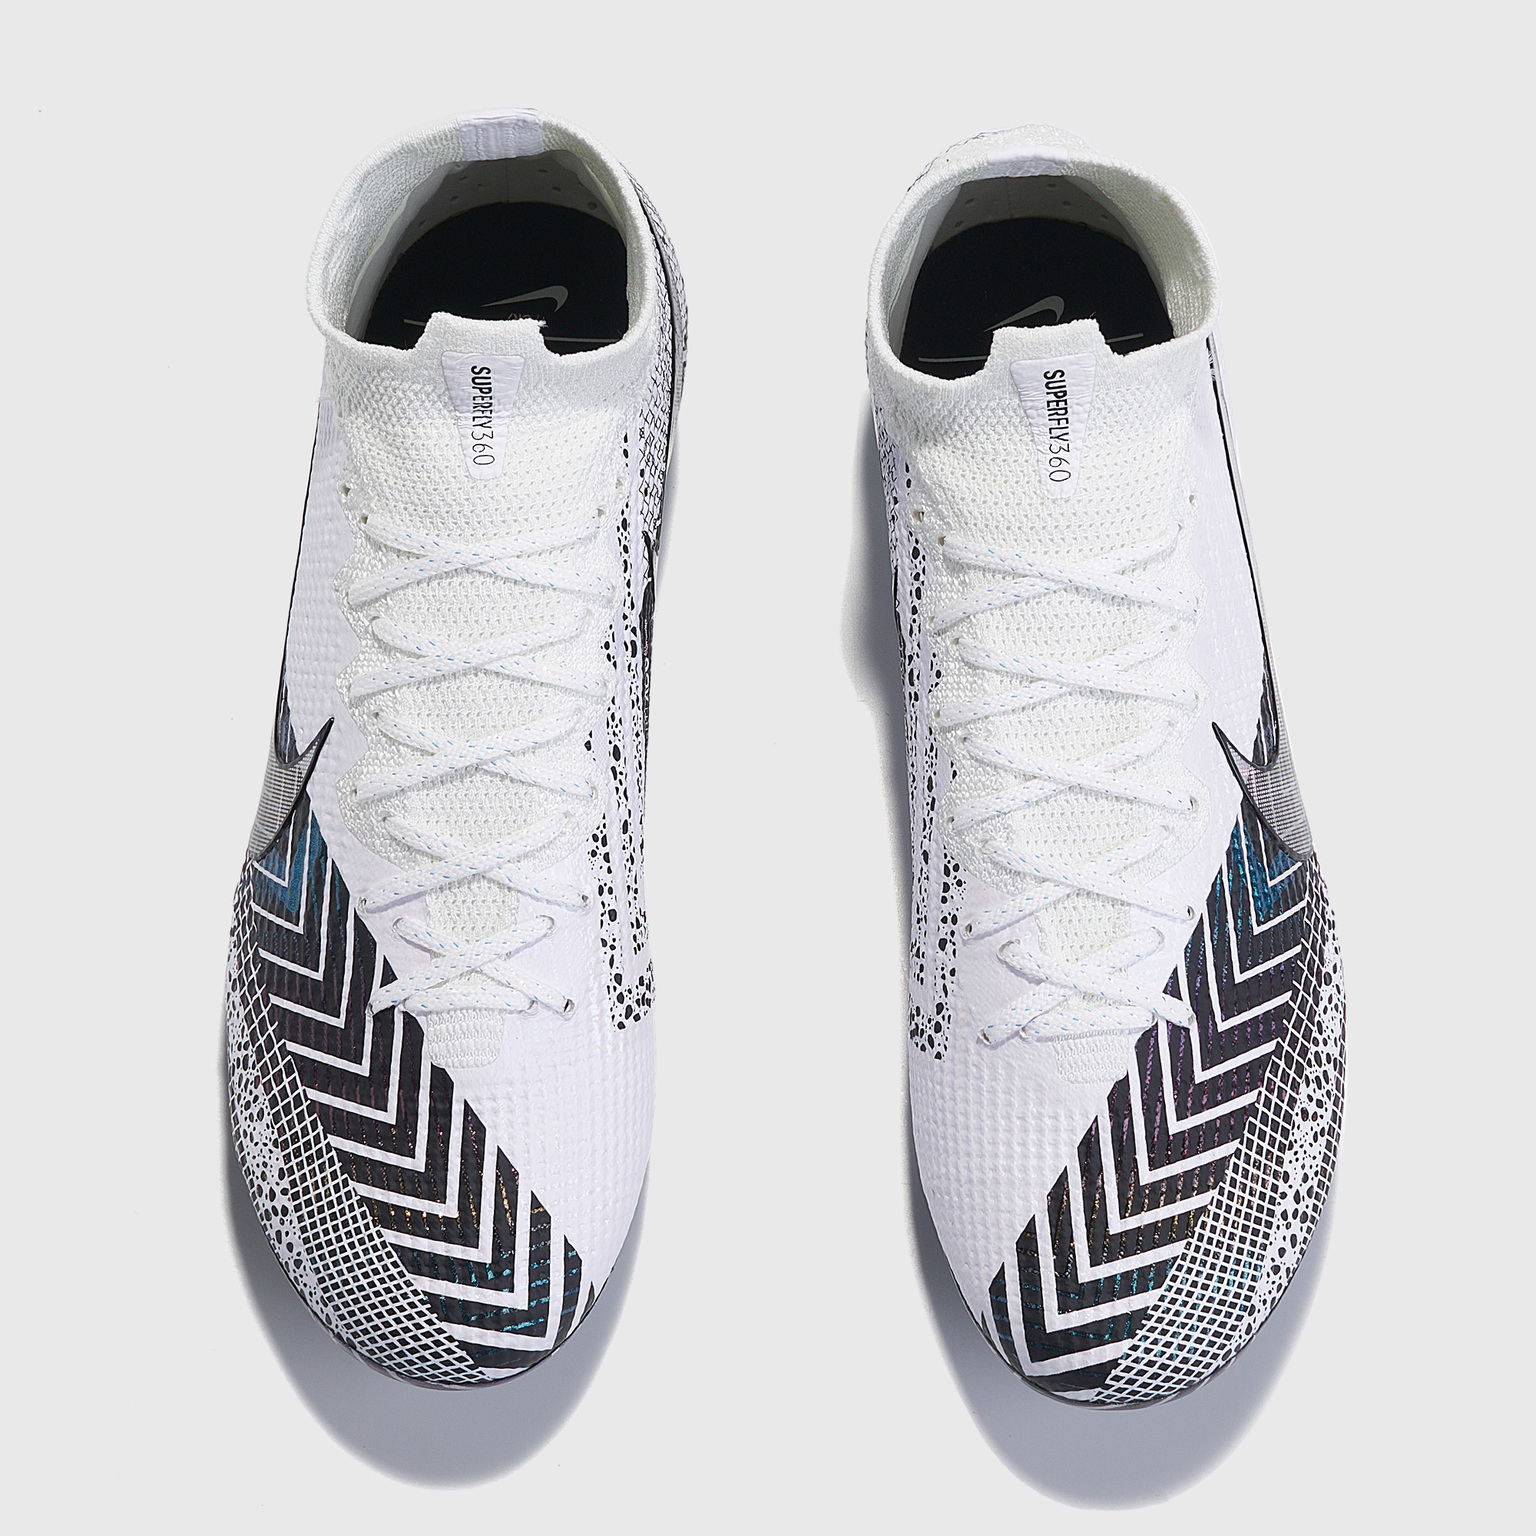 Бутсы Nike Superfly 7 Elite MDS FG BQ5469-110